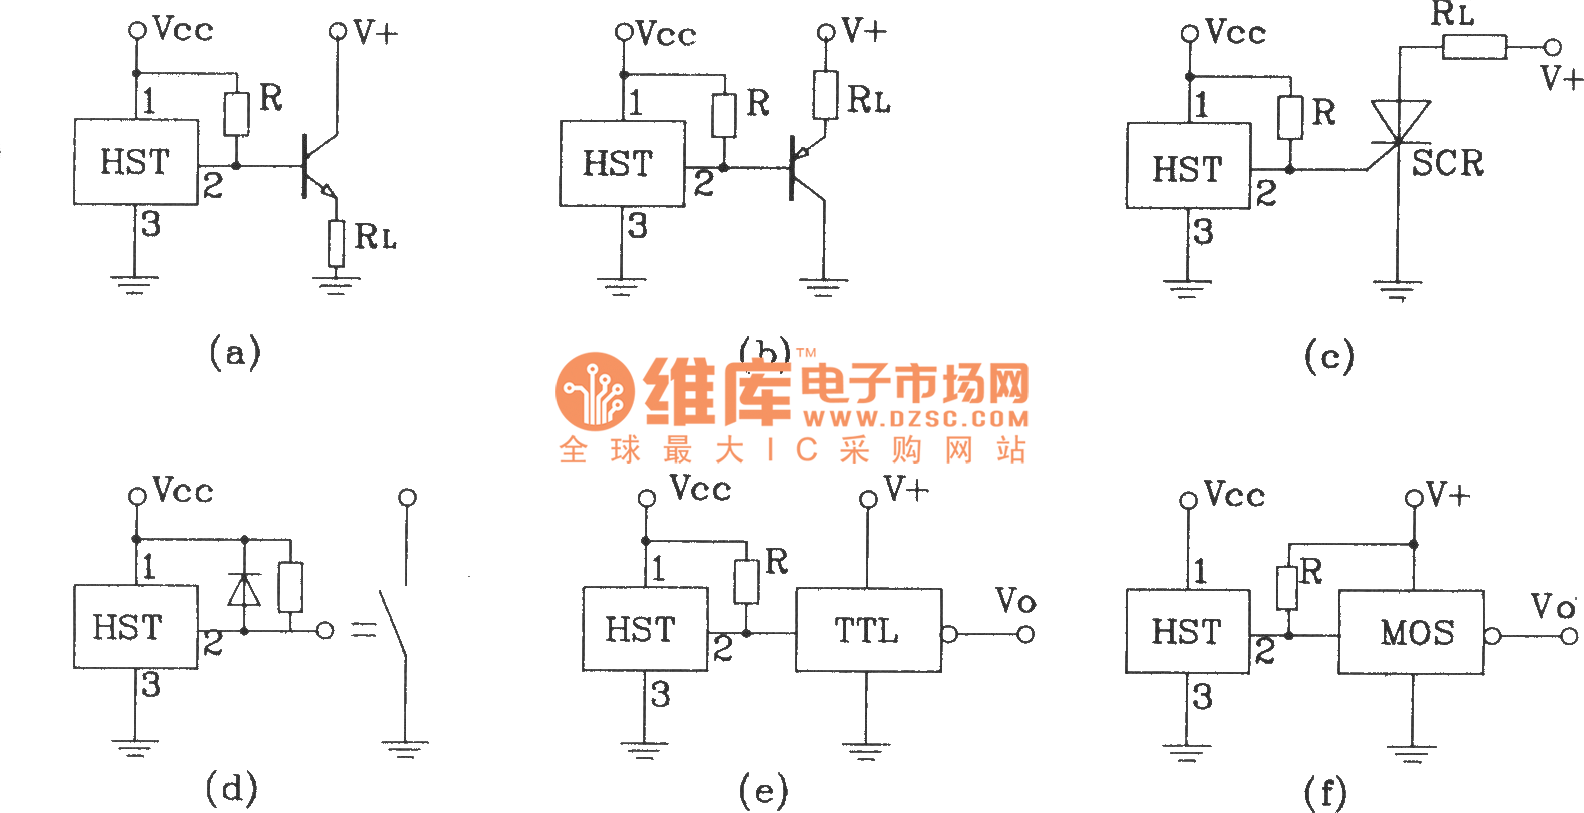 The Common Interface Circuit Of Sh Hall Sensor Basic Basictriaczeropointswitch Electricalequipmentcircuit